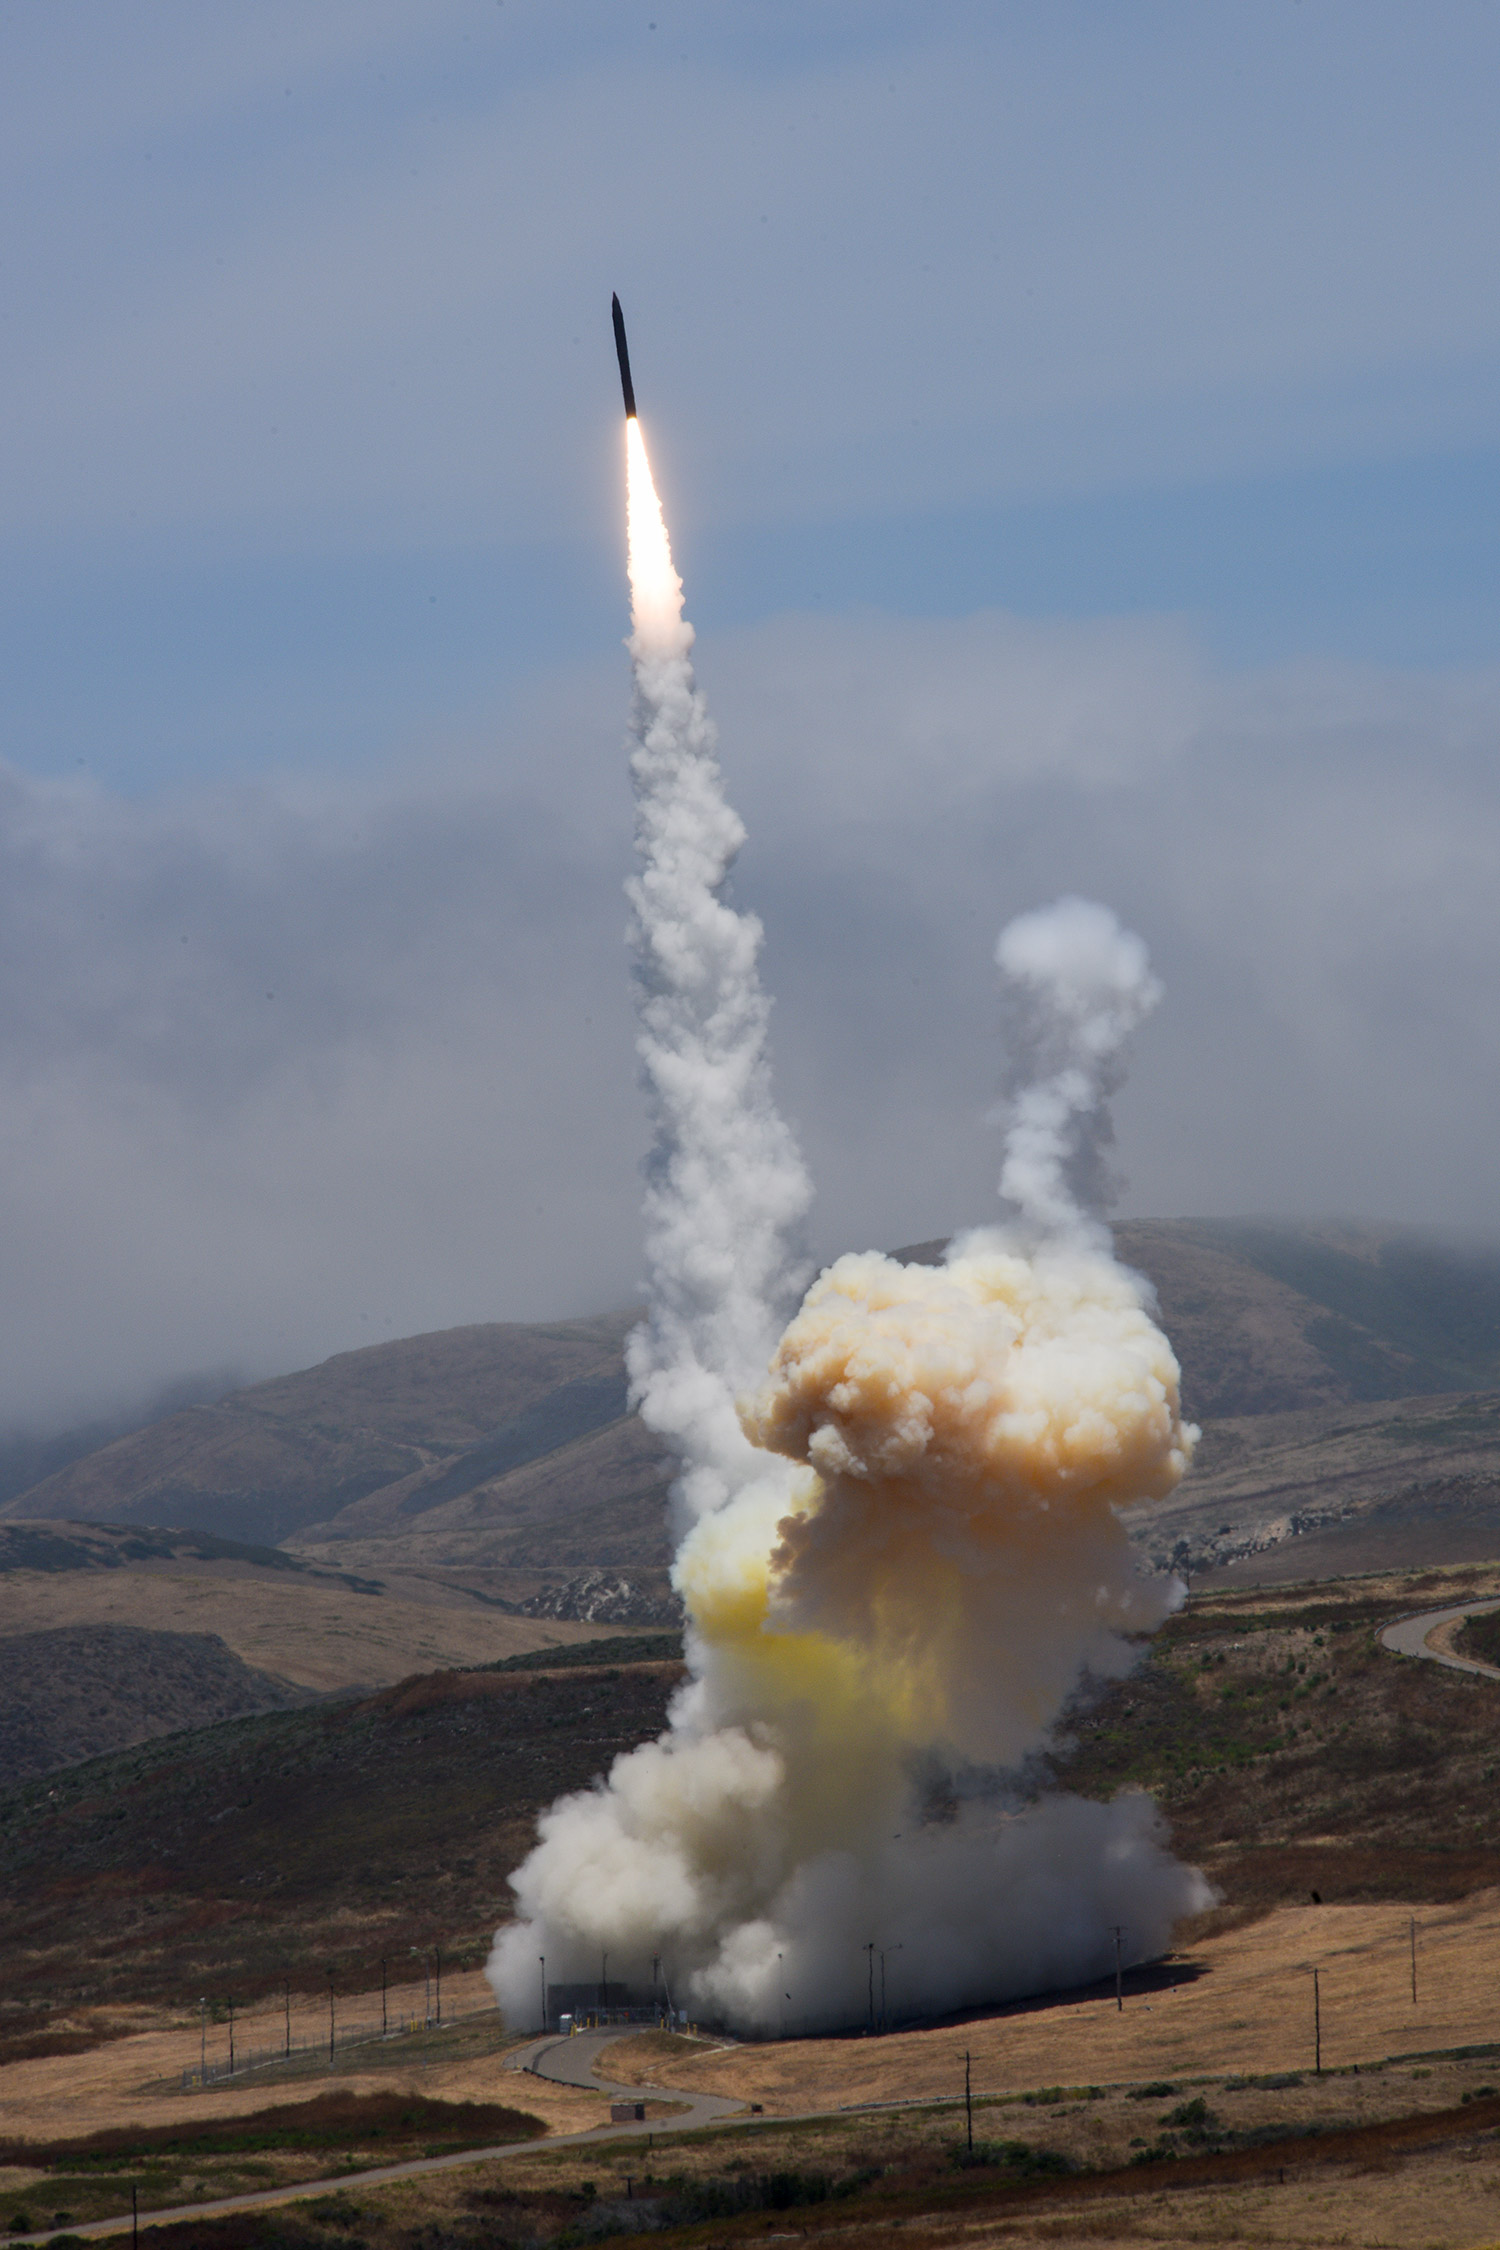 Boeing awarded $6 6 billion contract for GMD anti-ballistic